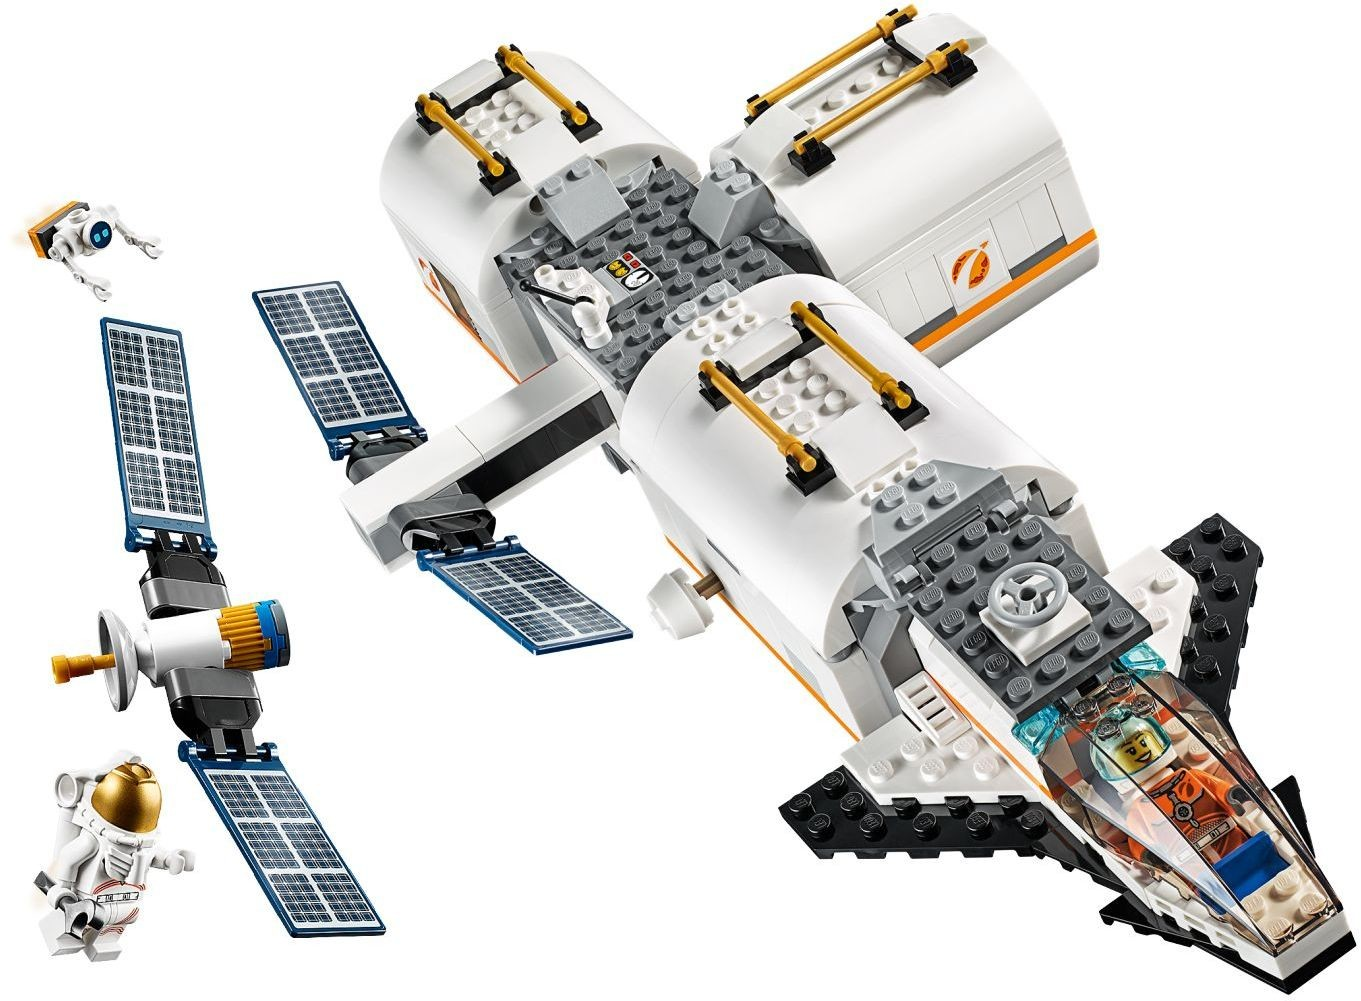 WANGE 4850 Space: The Moon Space Station 2